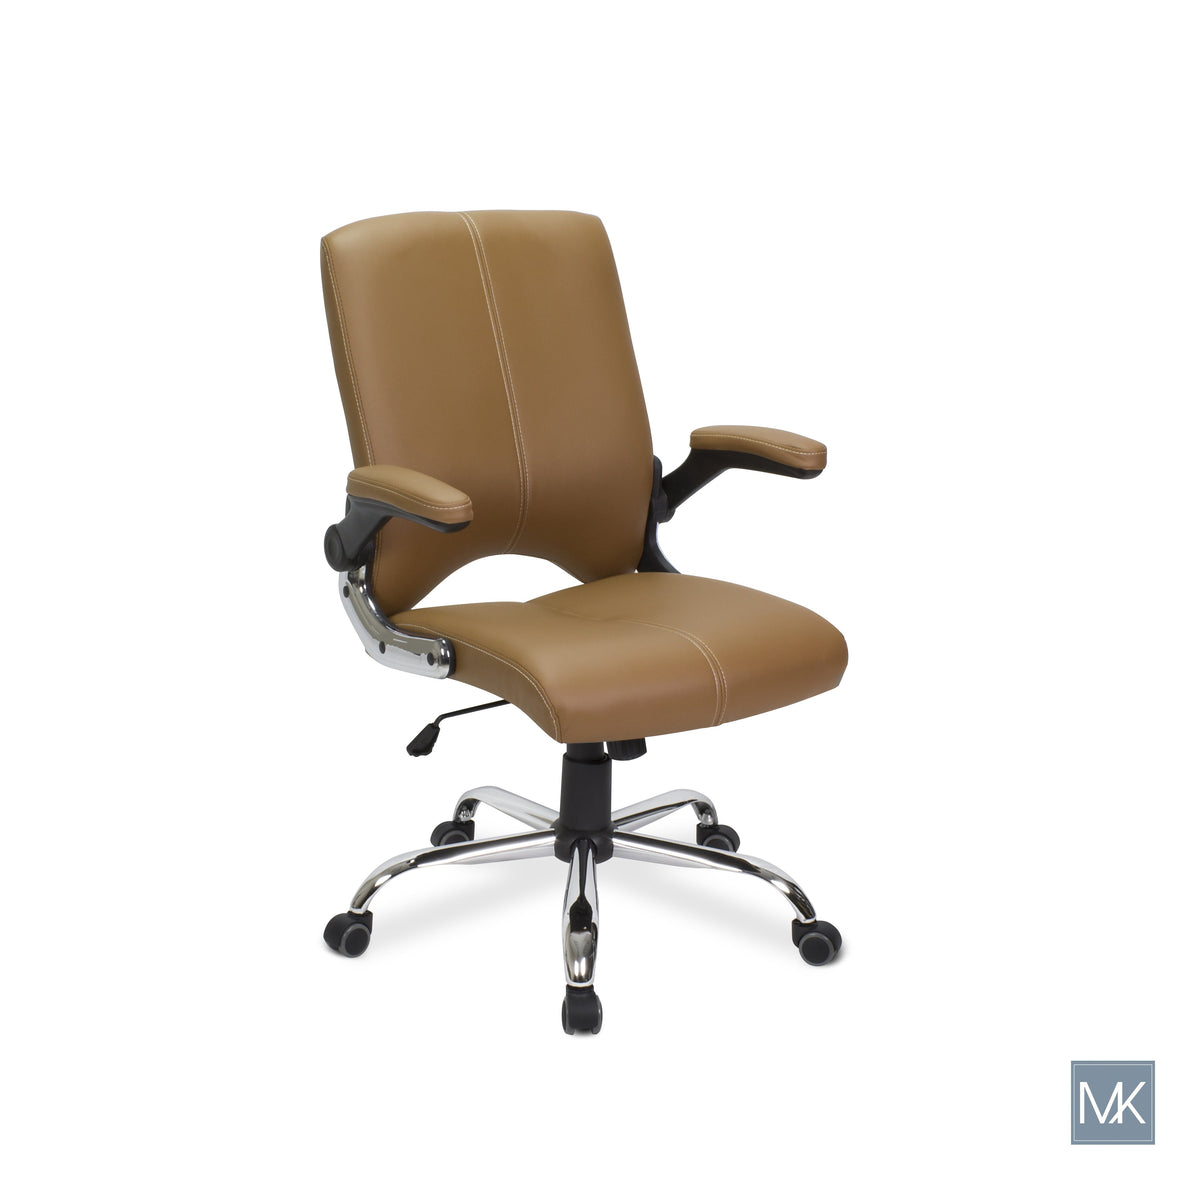 Eleventh image of Mayakoba Versa Customer Chair by Superb Nail Supply